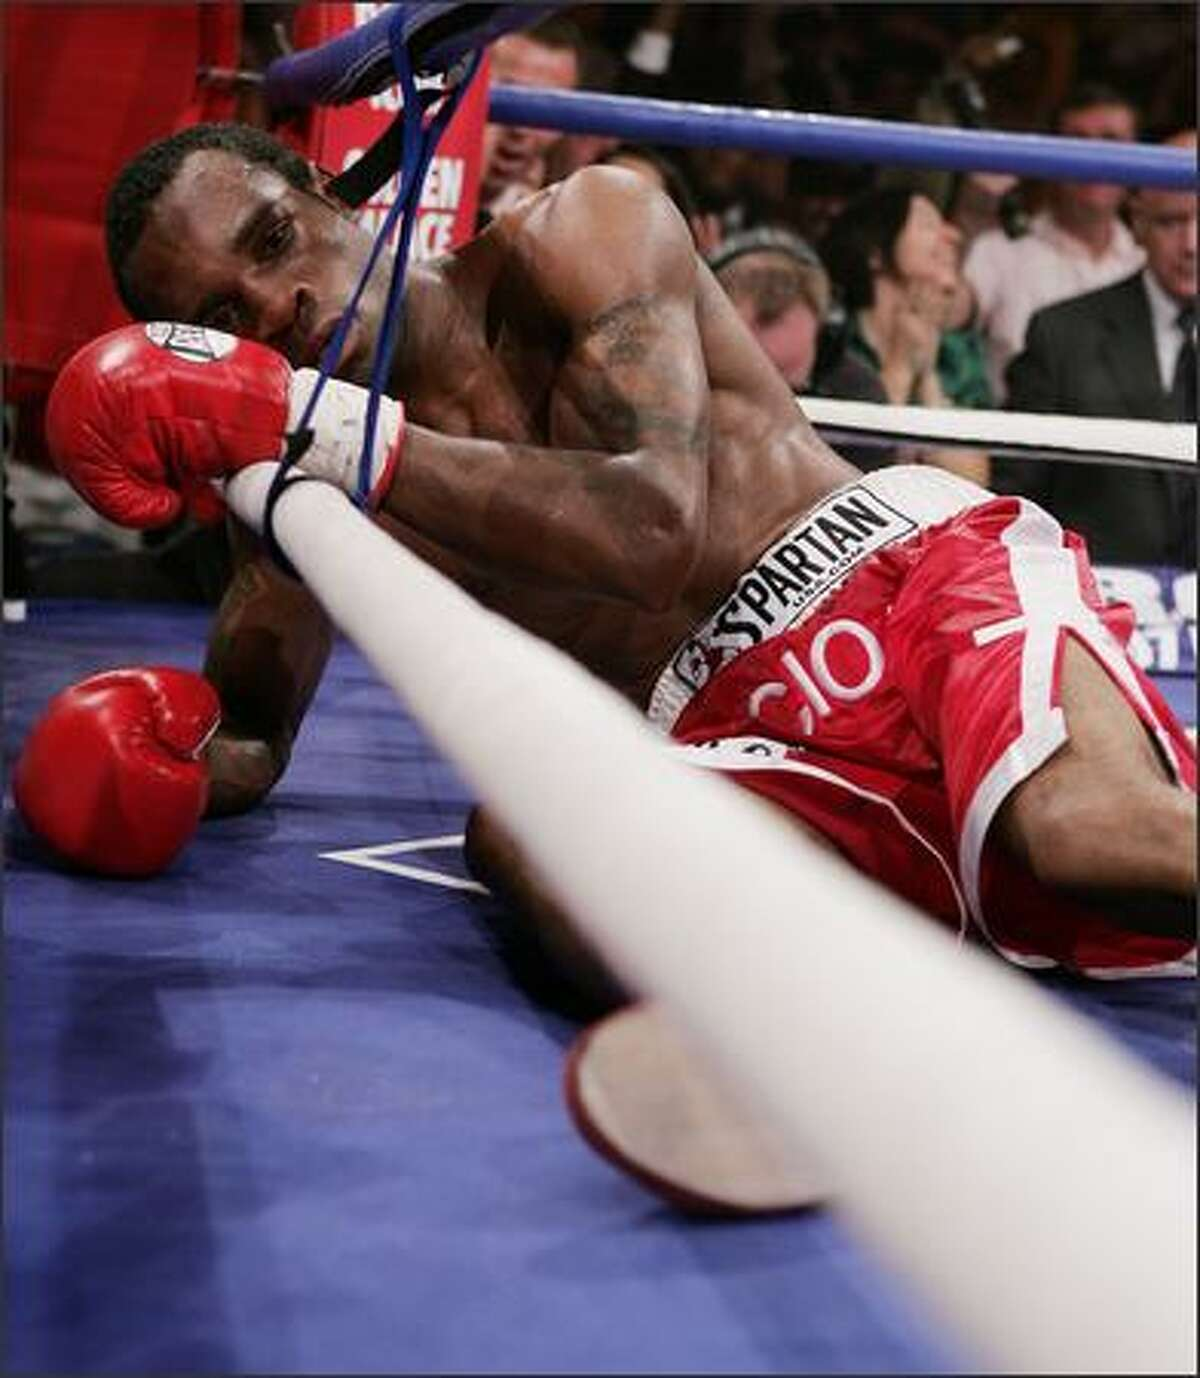 Vivian Harris is knocked out by Junior Witter for the WBC Light Welteweight title at The Doncaster Dome in Doncaster, England. (Photo by John Gichigi/Getty Images)